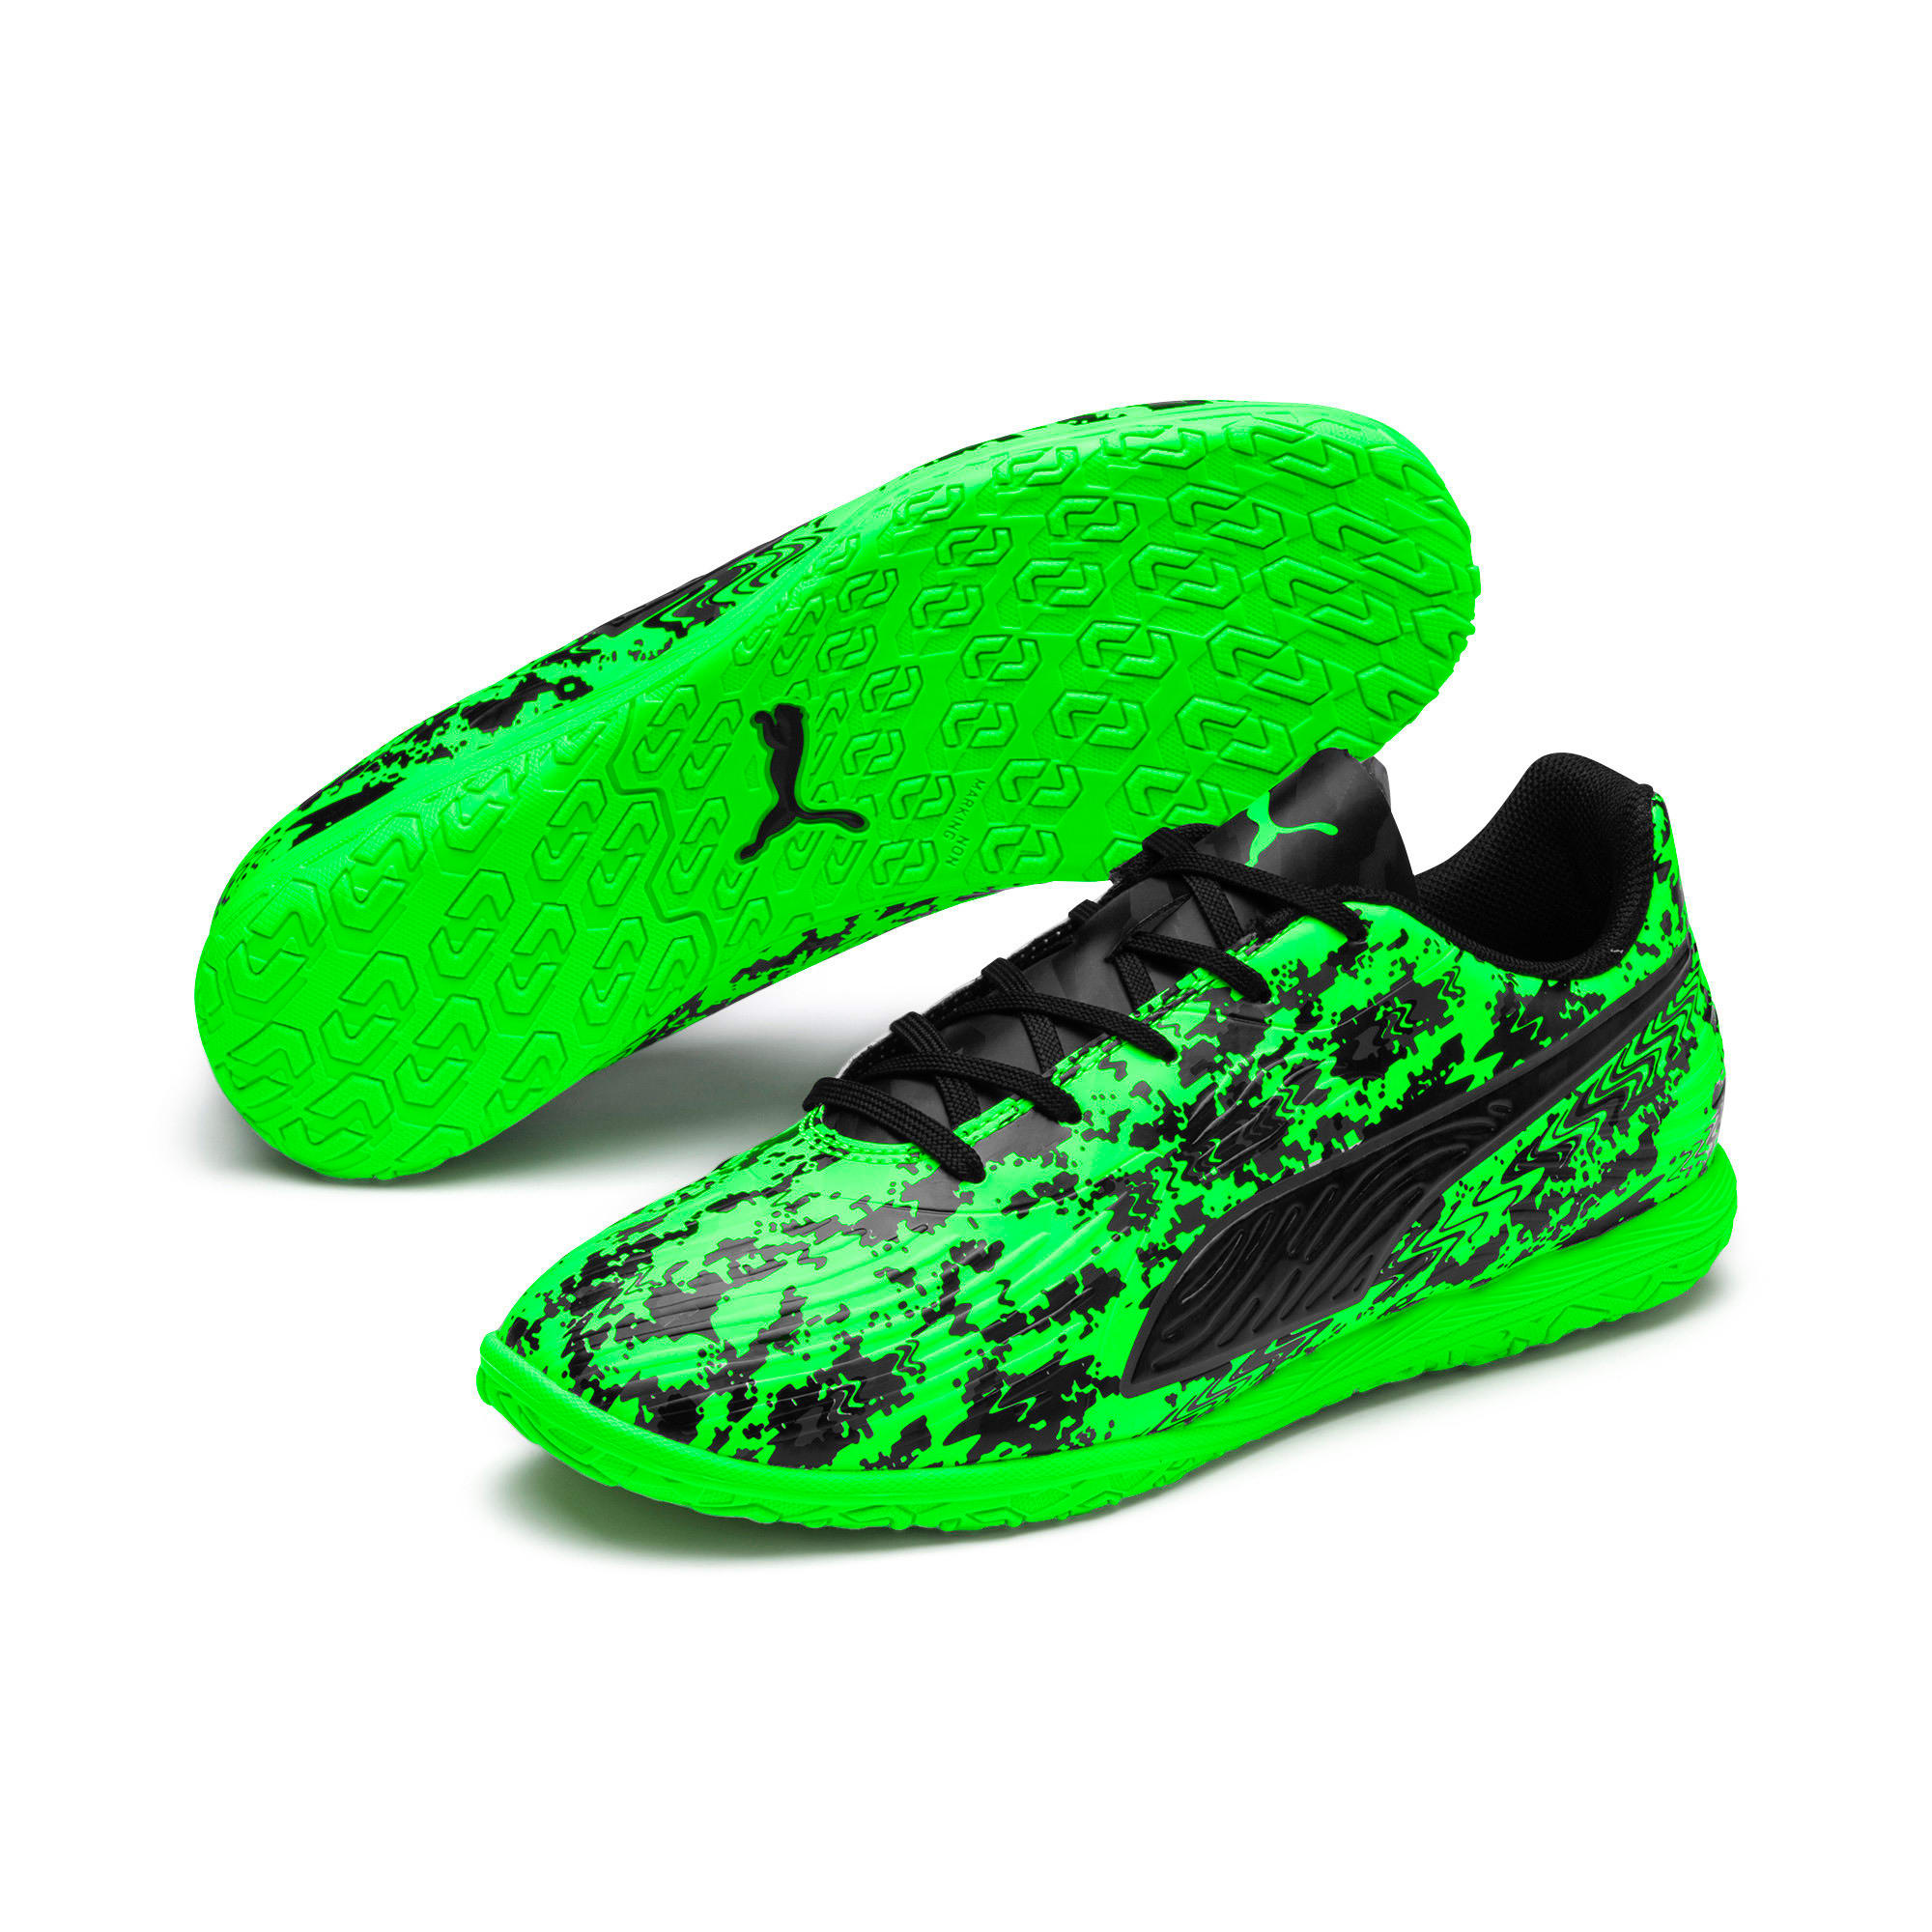 Thumbnail 2 of PUMA ONE 19.4 IT Soccer Shoes JR, Green Gecko-Black-Gray, medium